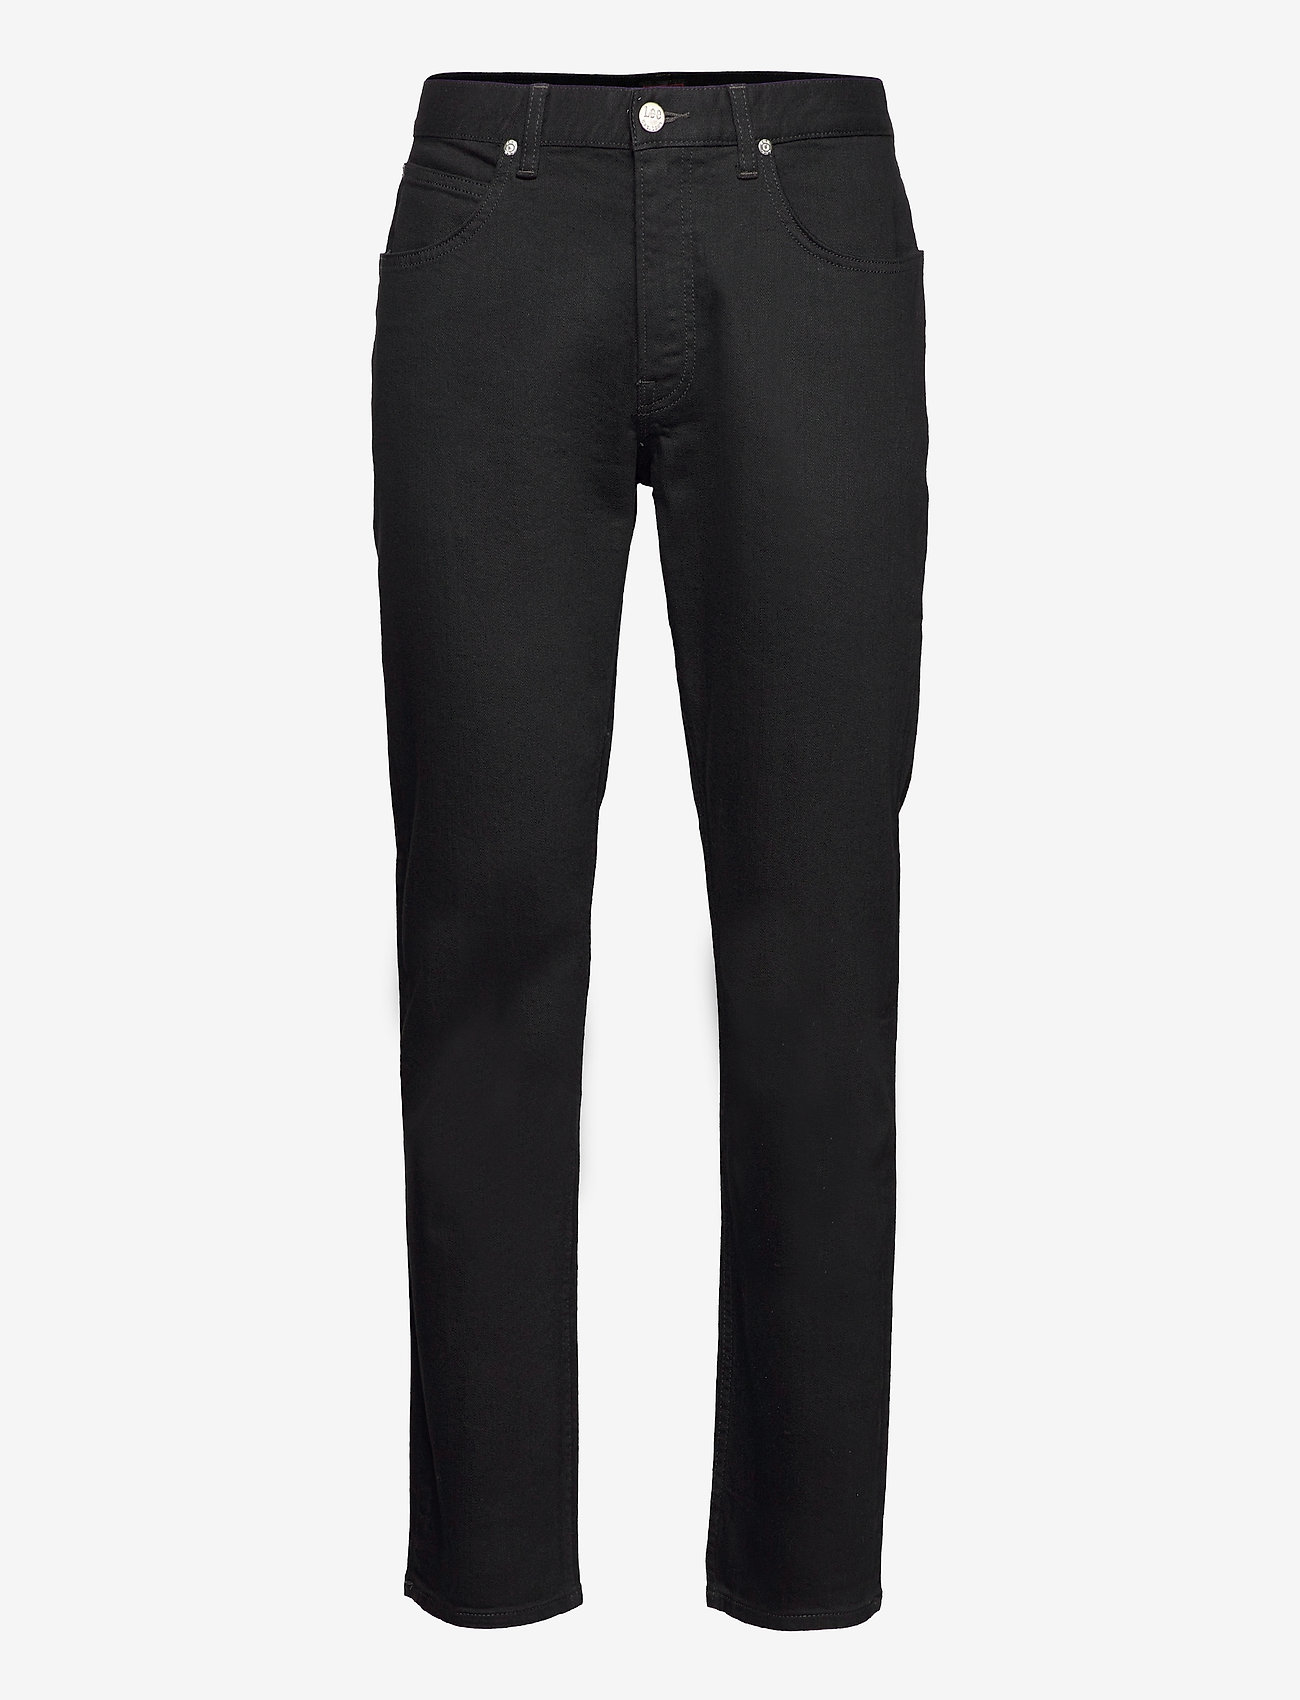 Lee Jeans - BROOKLYN STRAIGHT - relaxed jeans - clean black - 0